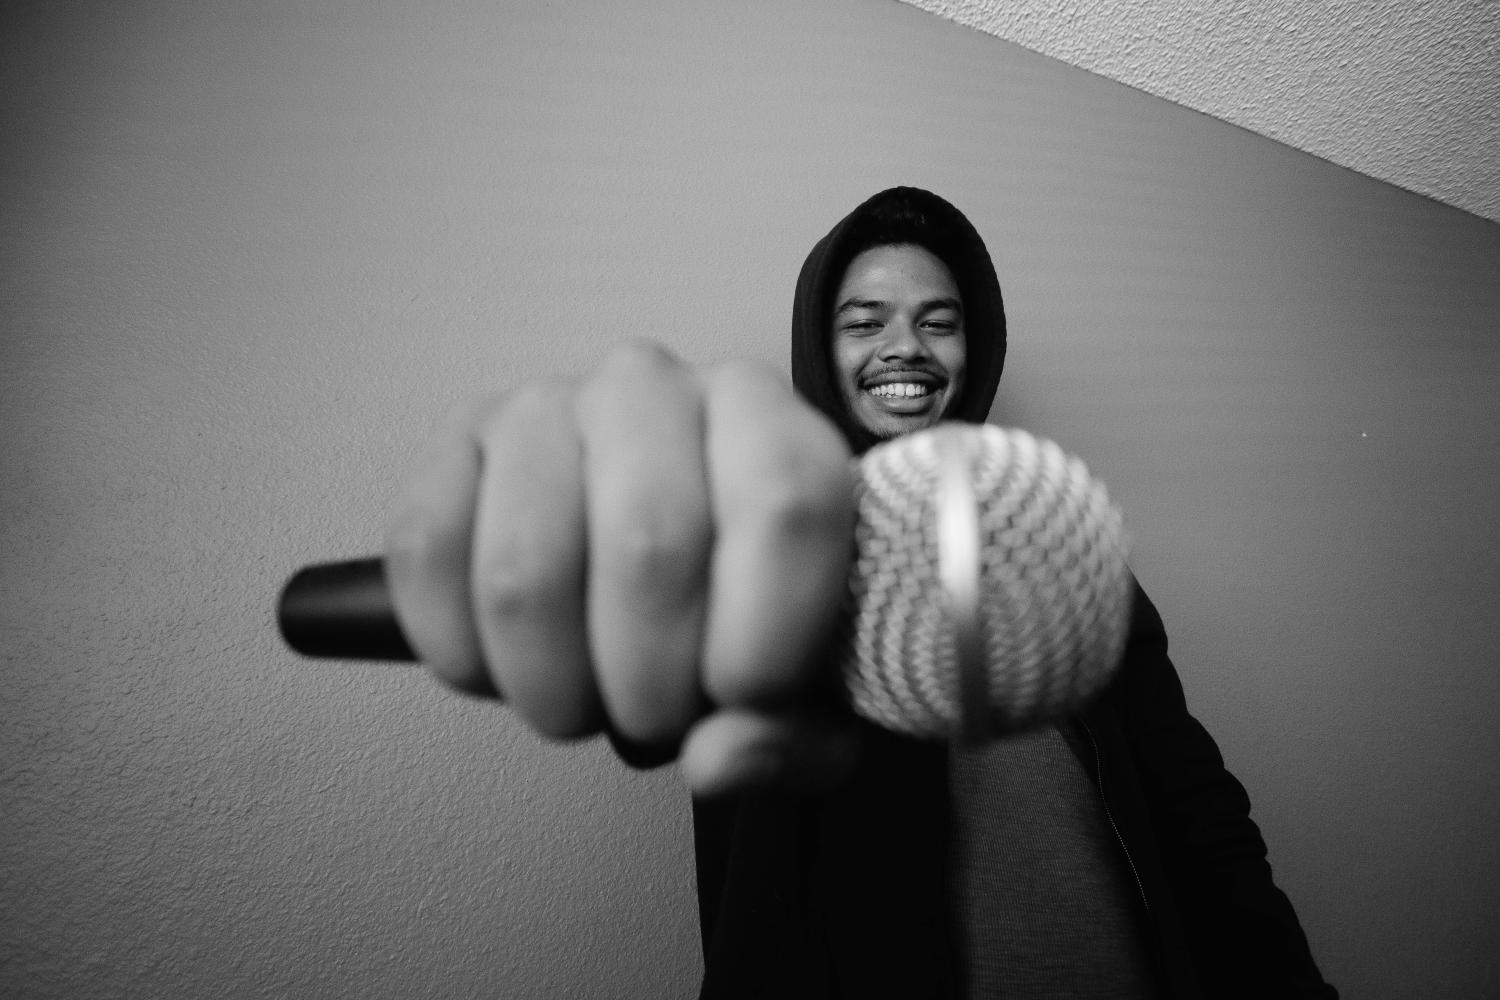 Rapper hopes to make a difference through his music on SoundCloud